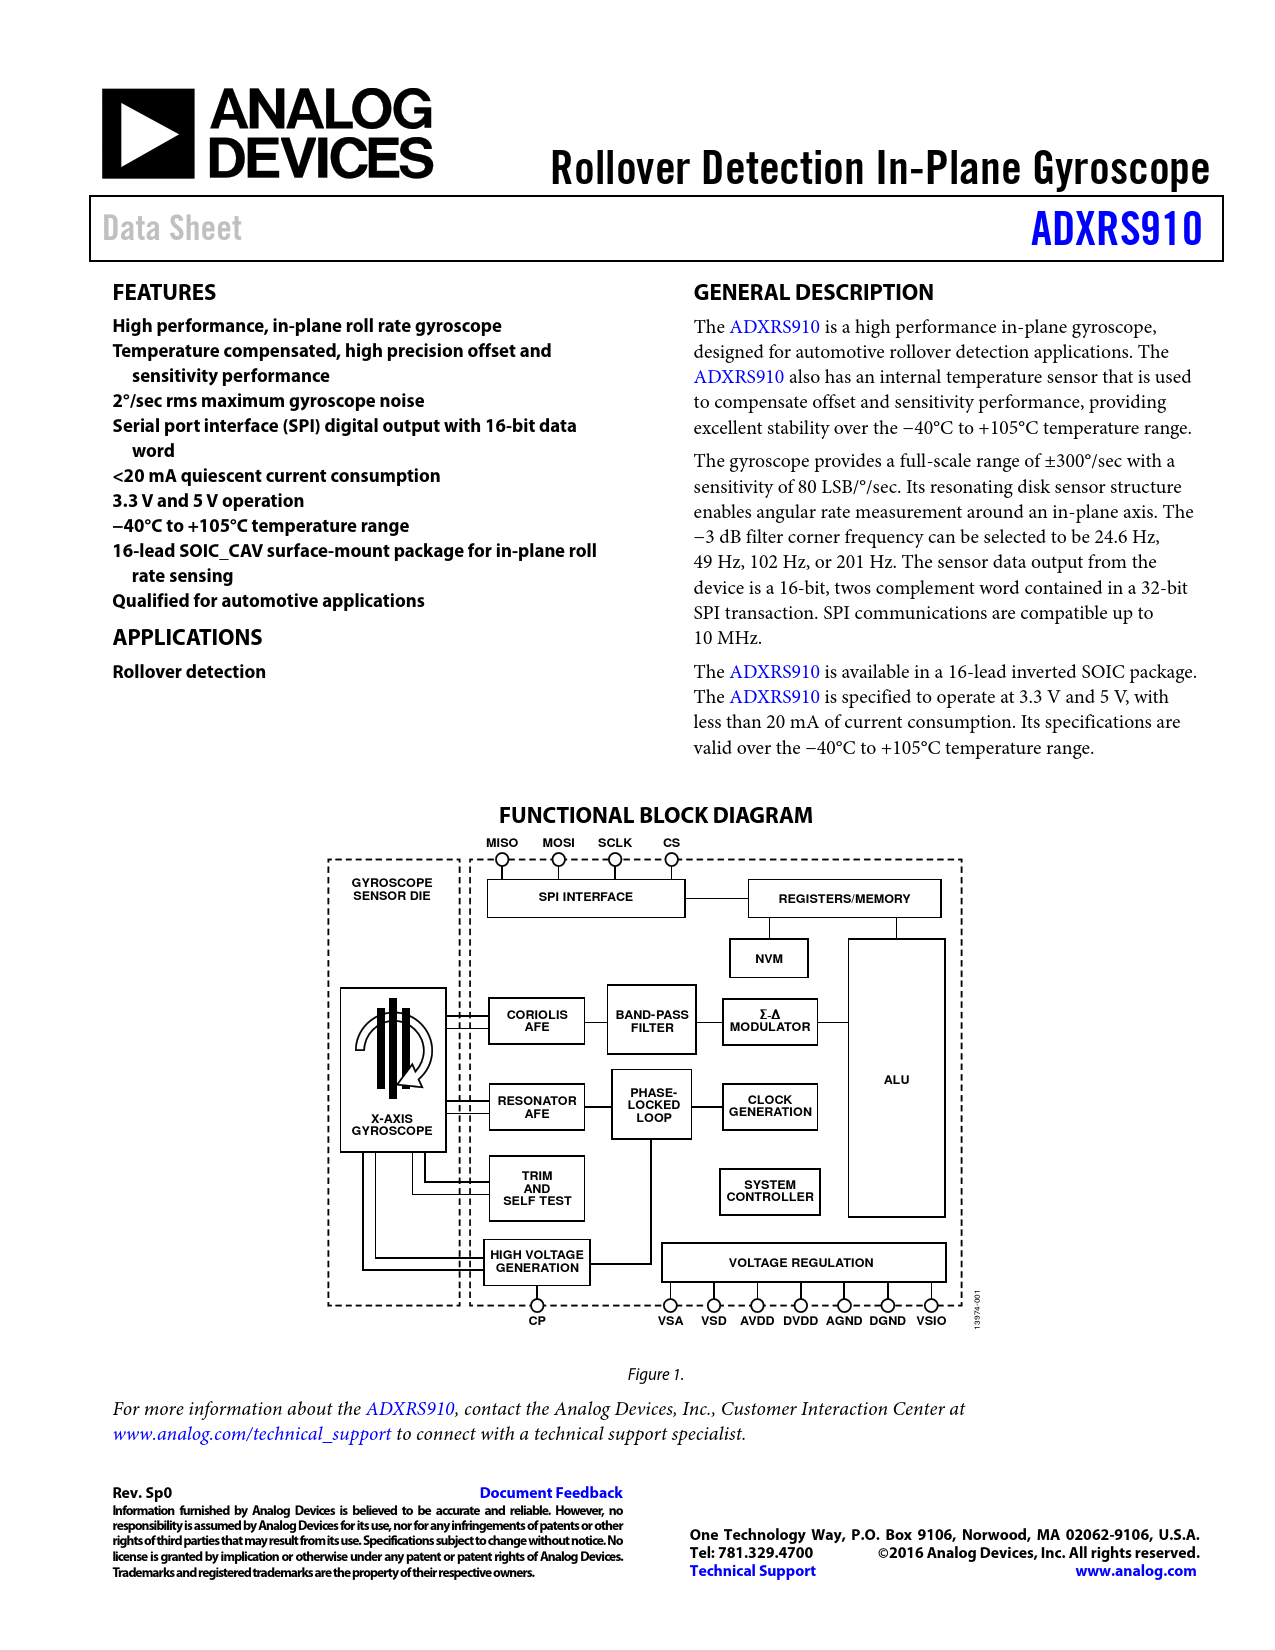 Datasheet ADXRS910 Analog Devices, Revision: Sp0